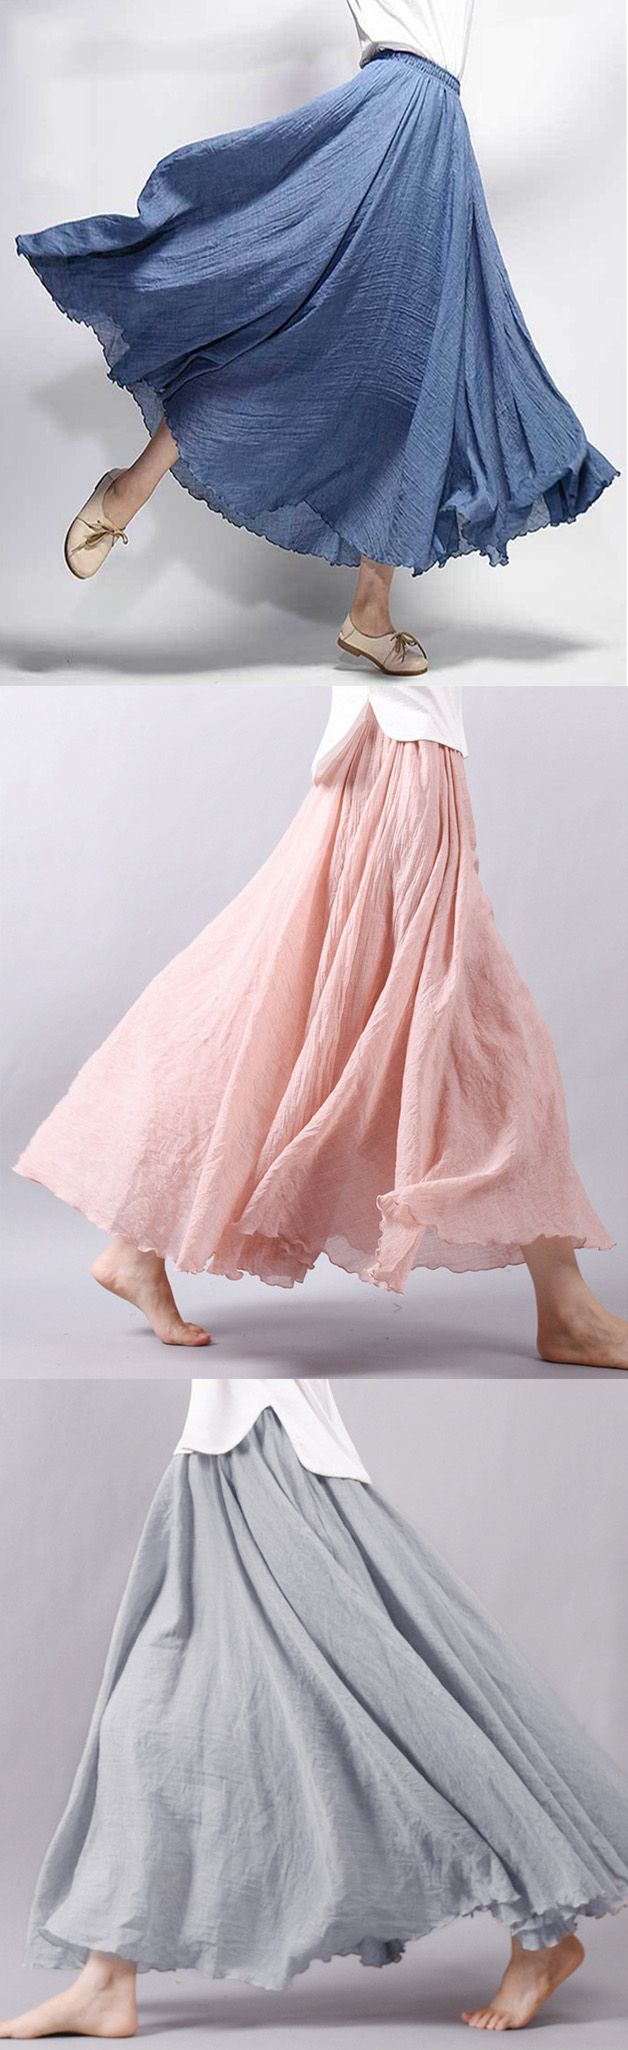 I love the idea of one of these skirts! …